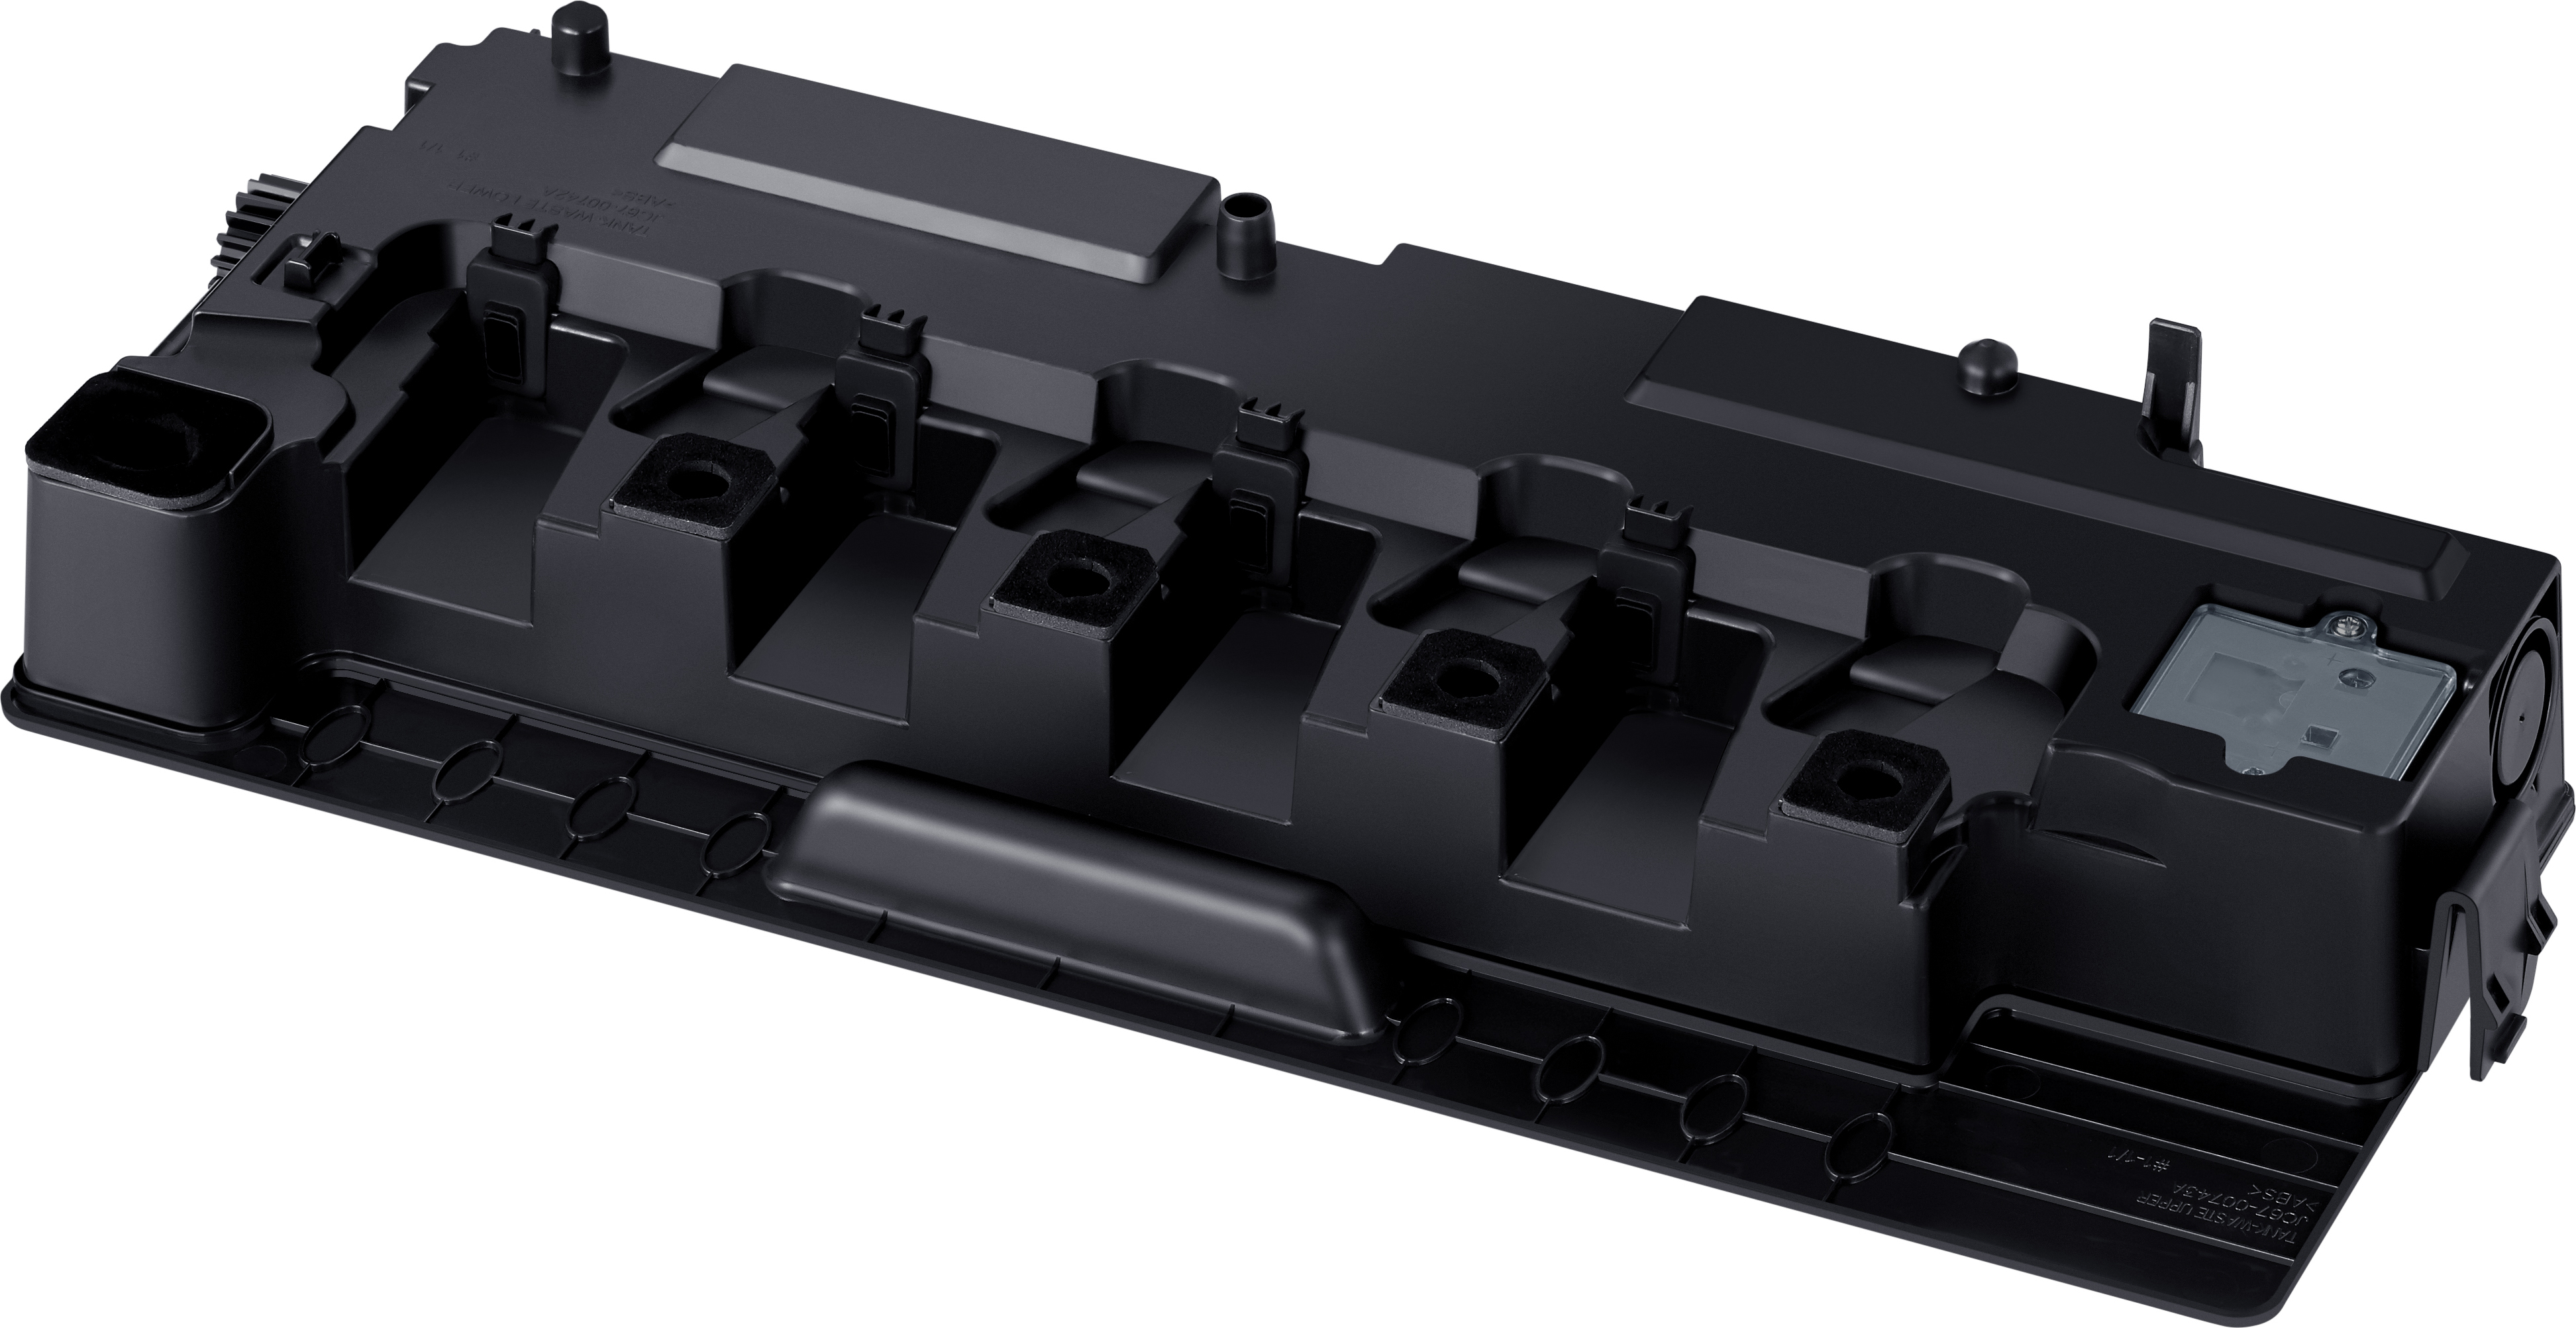 Waste Toners & Collectors Samsung CLTW808 Waste Toner Cartridge Box 71K pages - SS701A